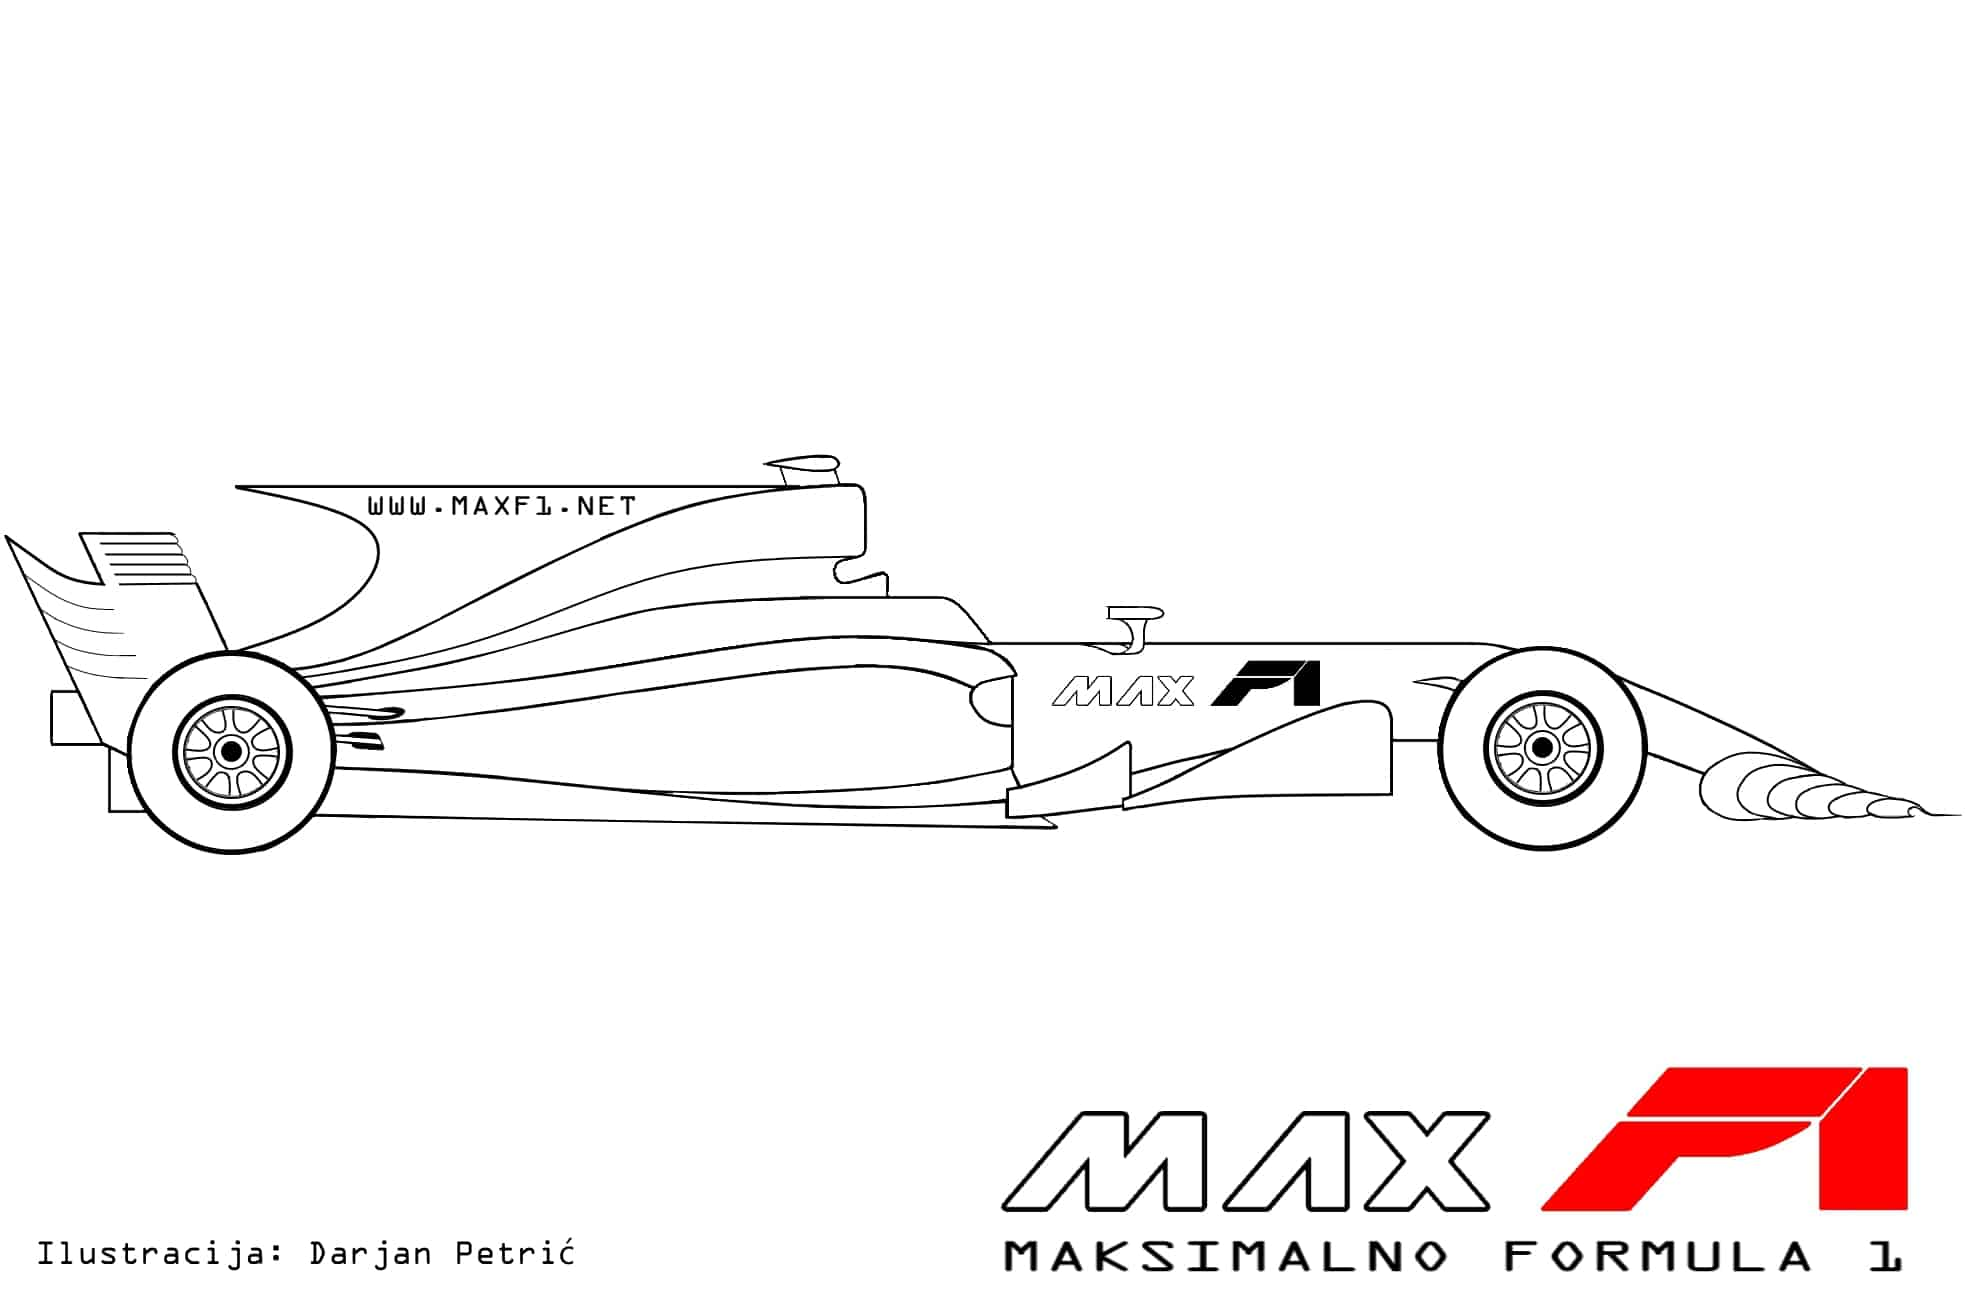 Formula 1 2017 car side technical drawing by Darjan Petric maxf1.net hrv red